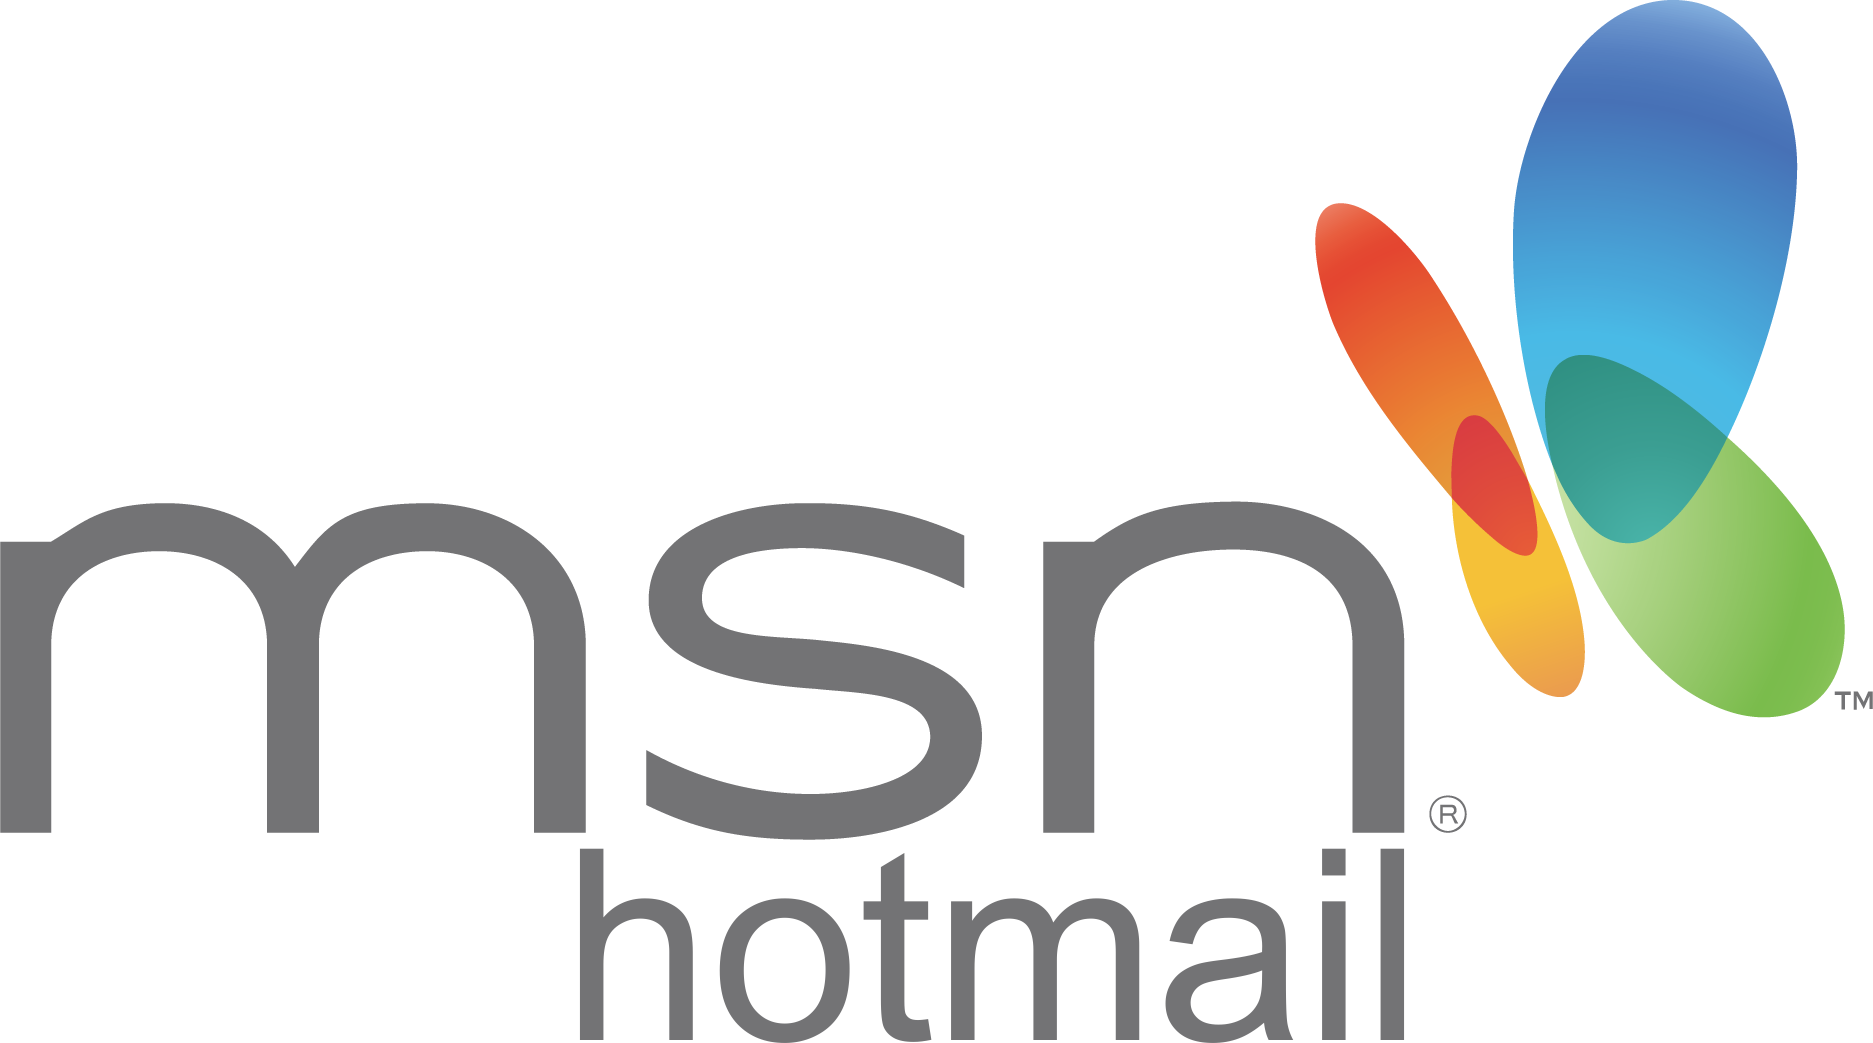 hotmail mail logo 02